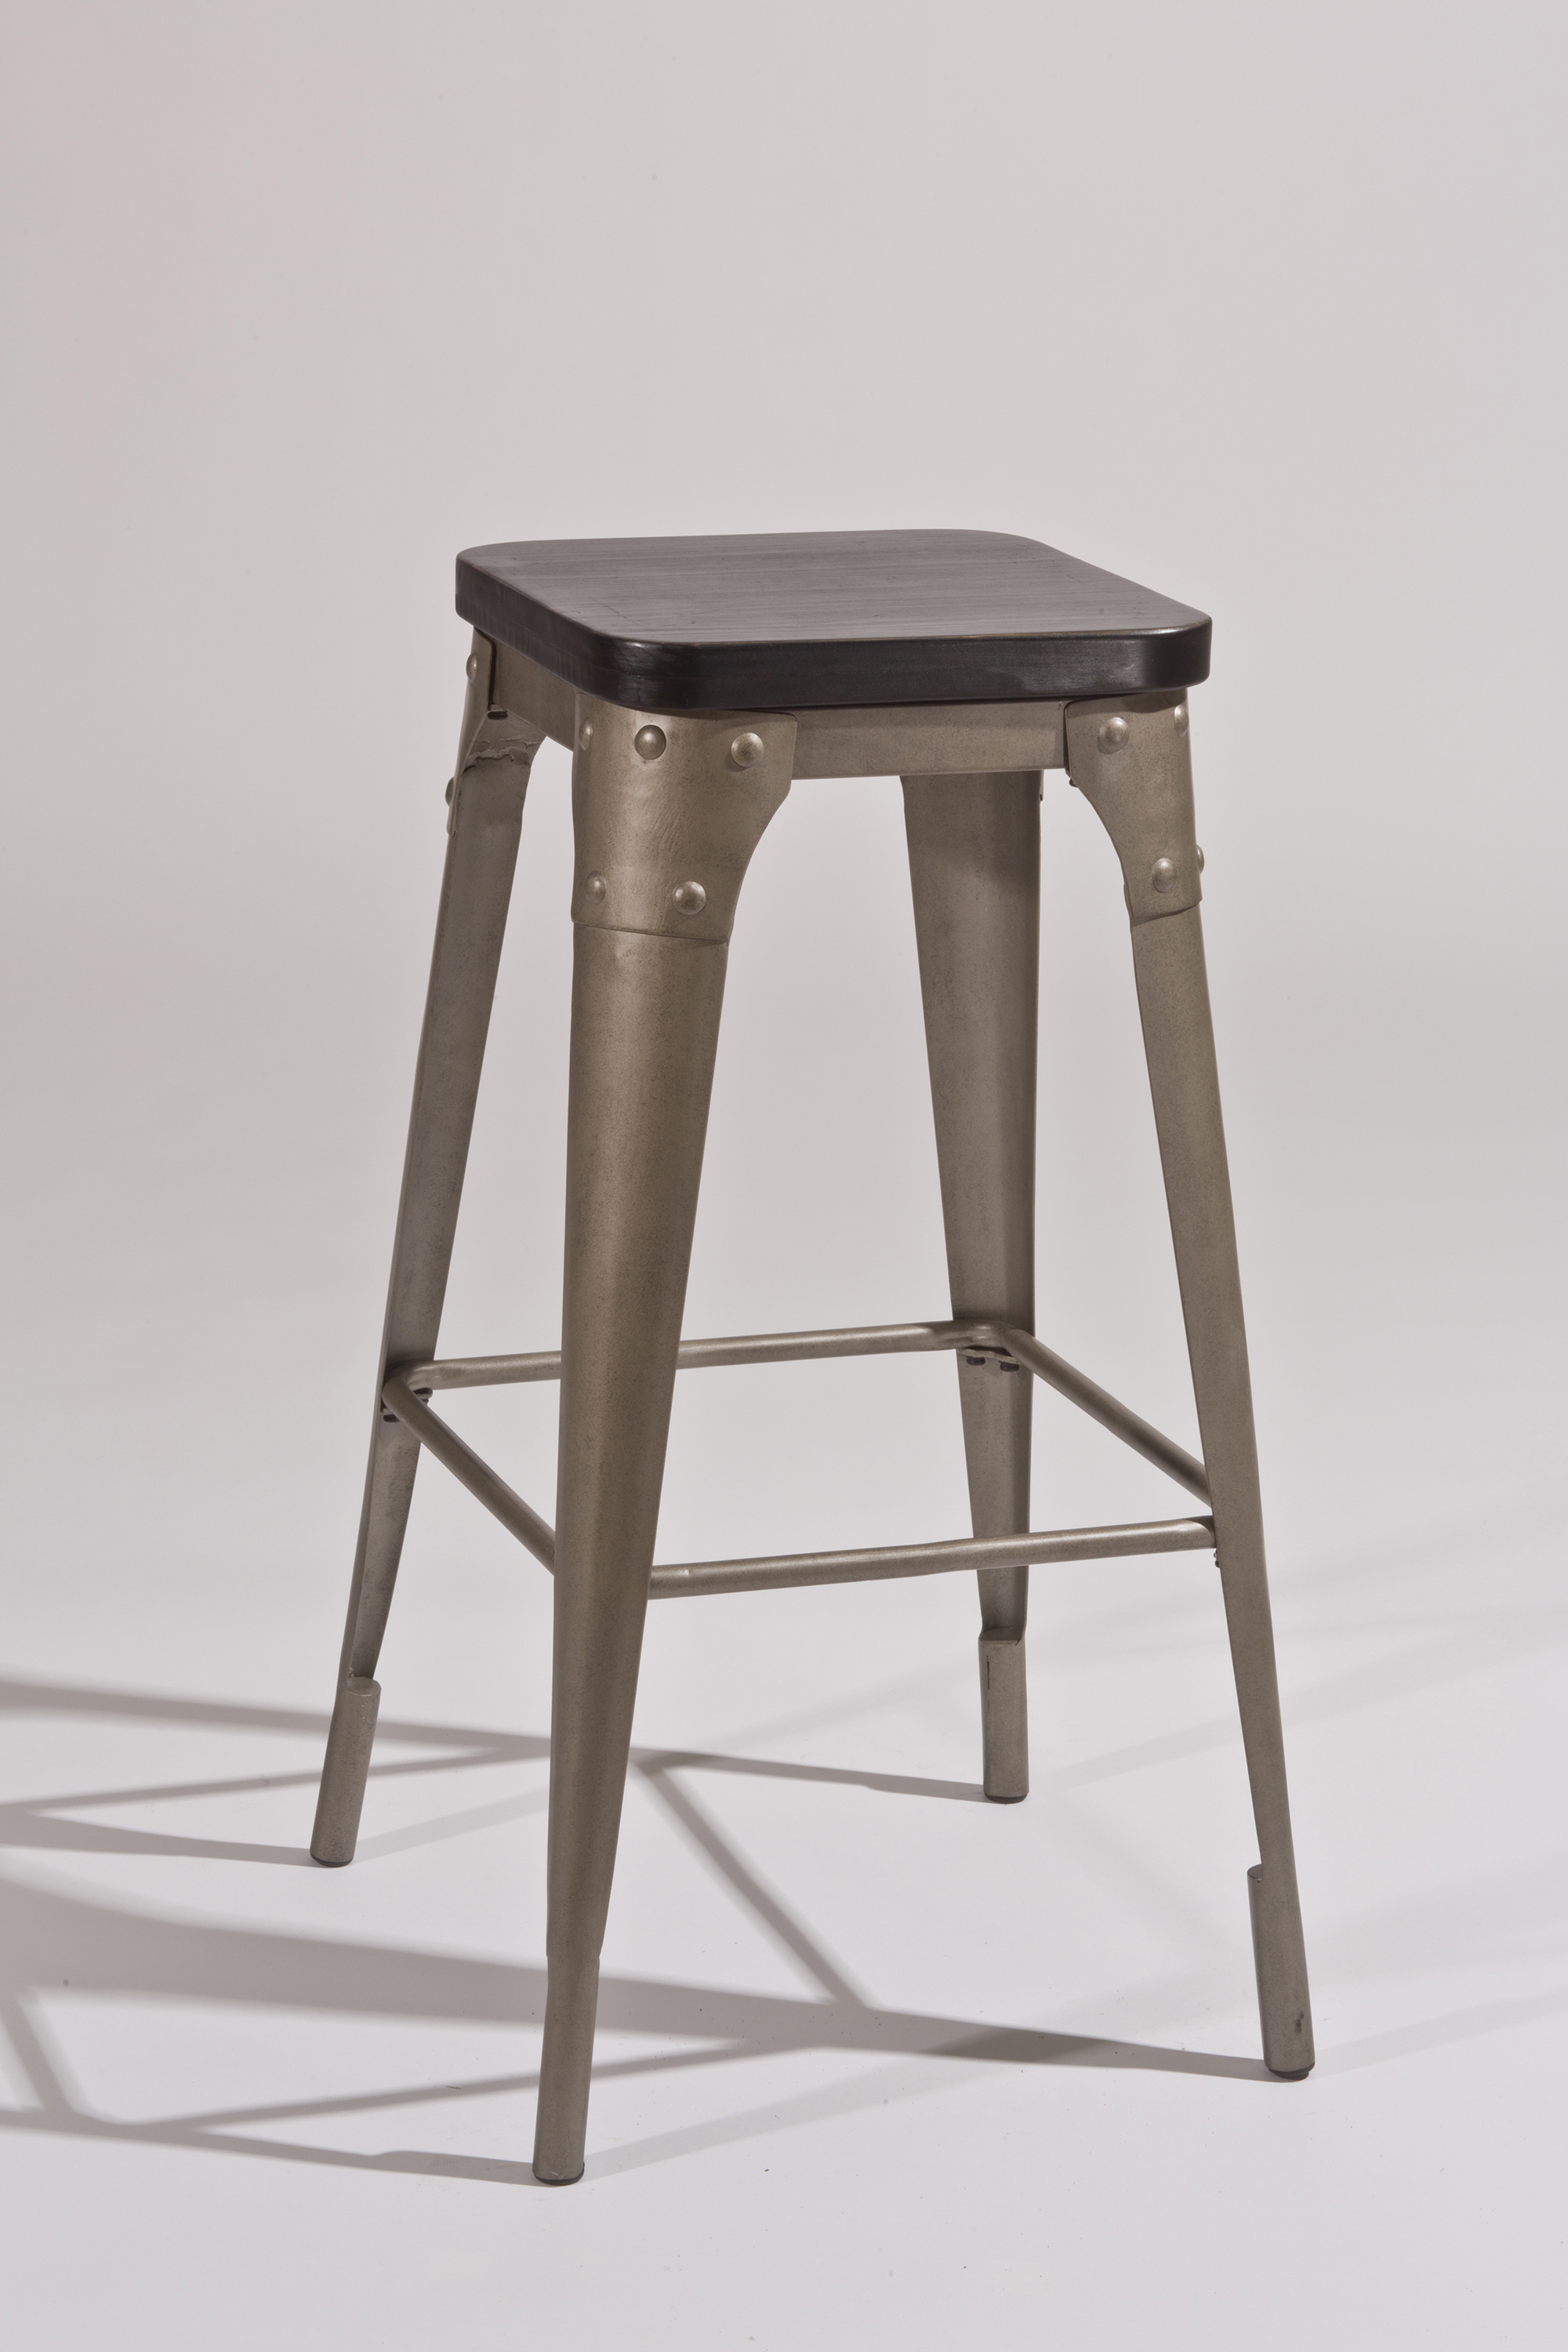 Hillsdale Backless Bar Stools 5733 828 Metal Backless